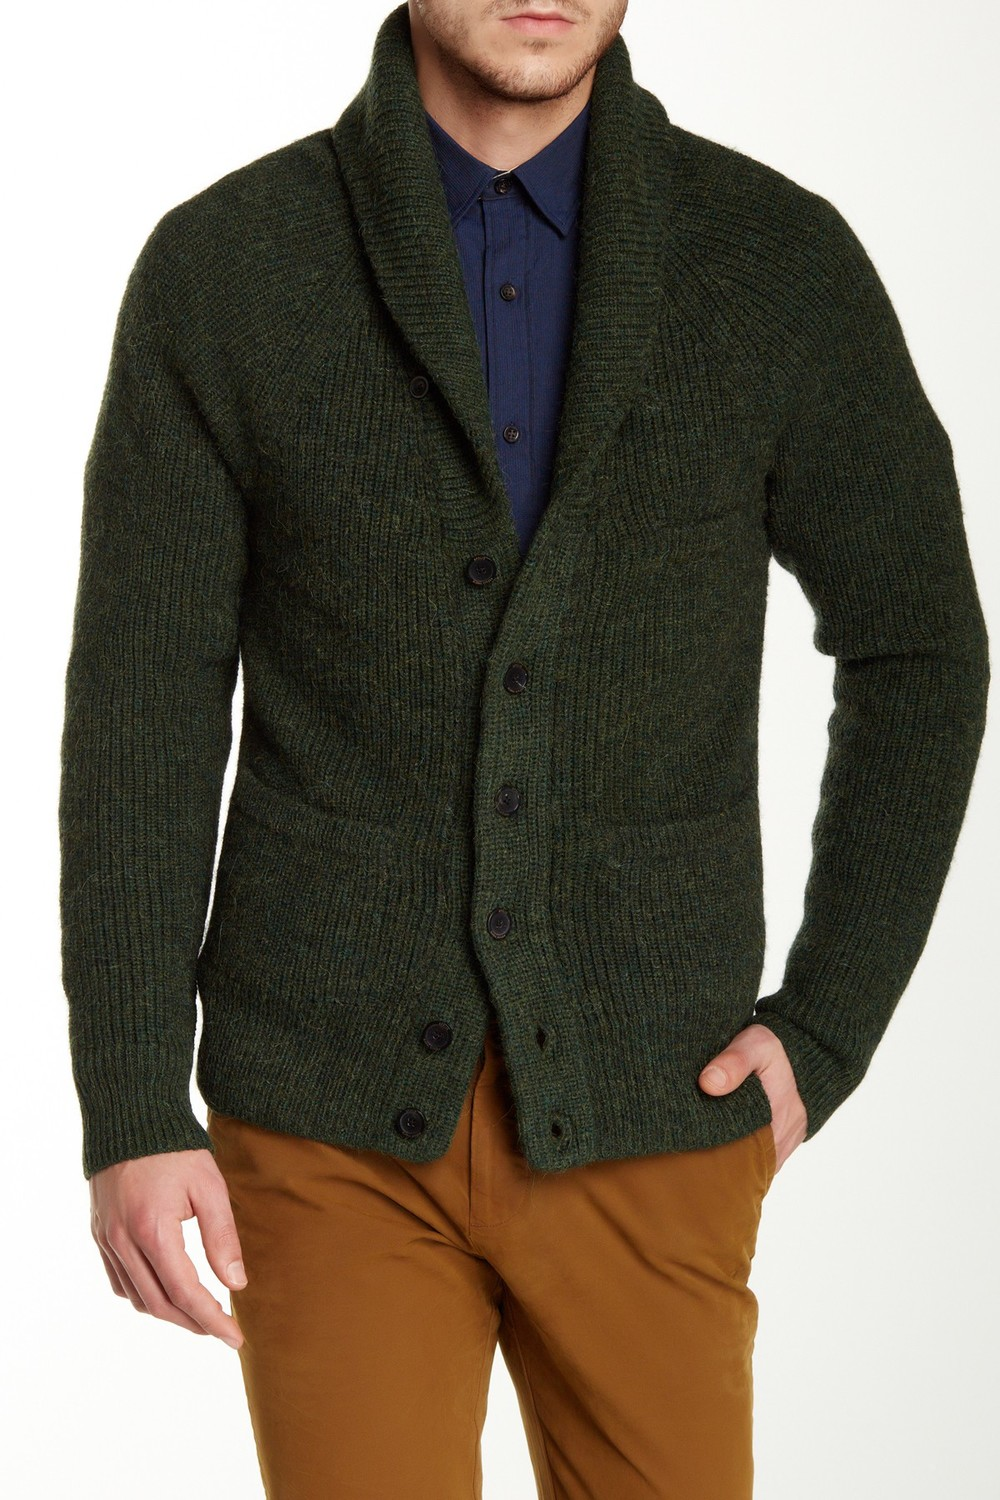 Apolis Genuine Suede Leather Elbow Patch Cardigan. Nordstrom Rack. Was: $324 Now: $129.